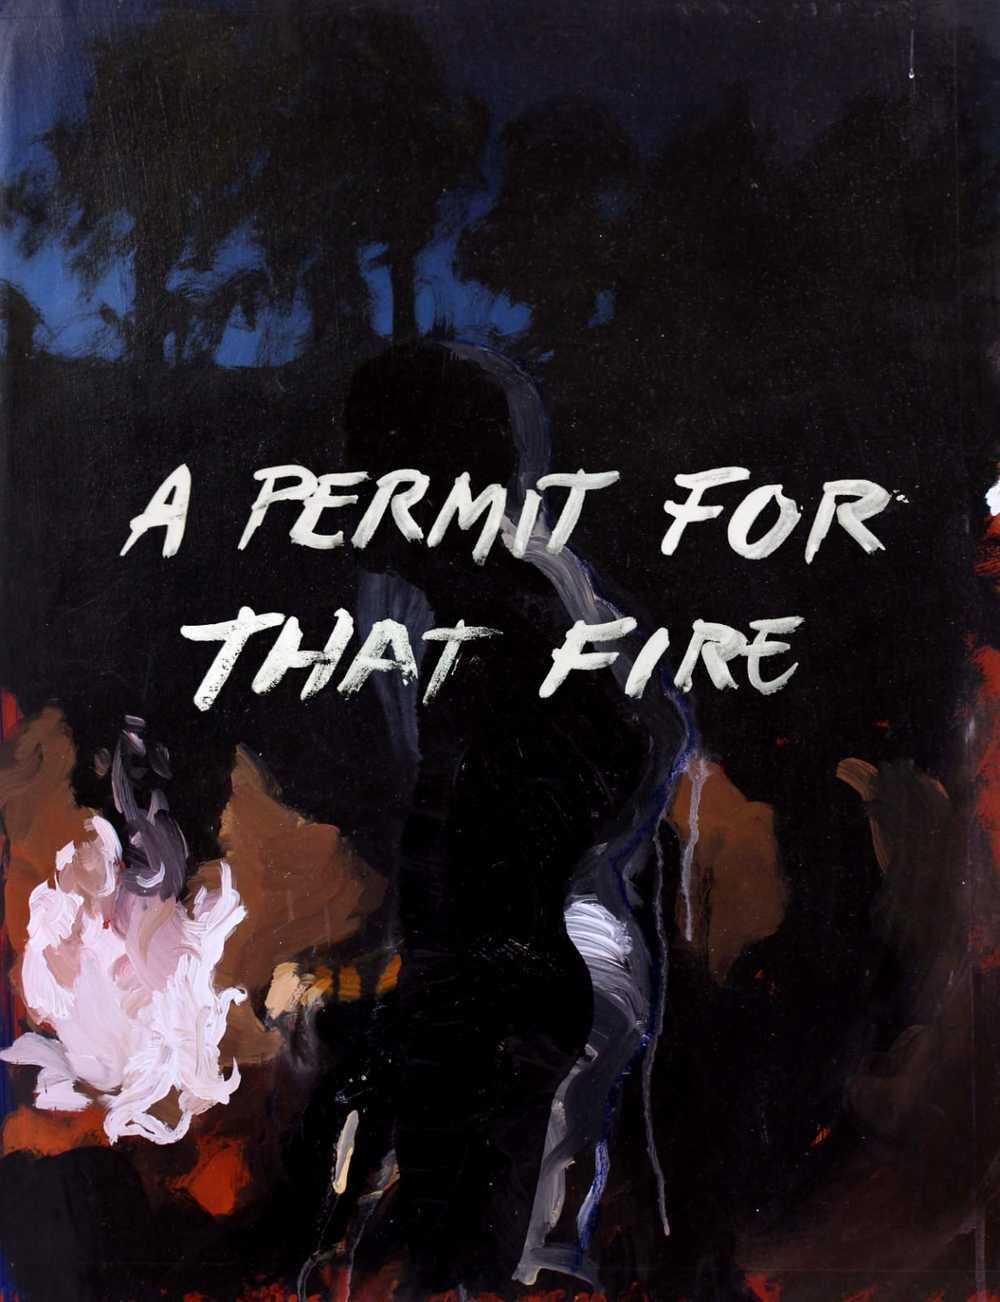 Joao gabriel a permit for that fire